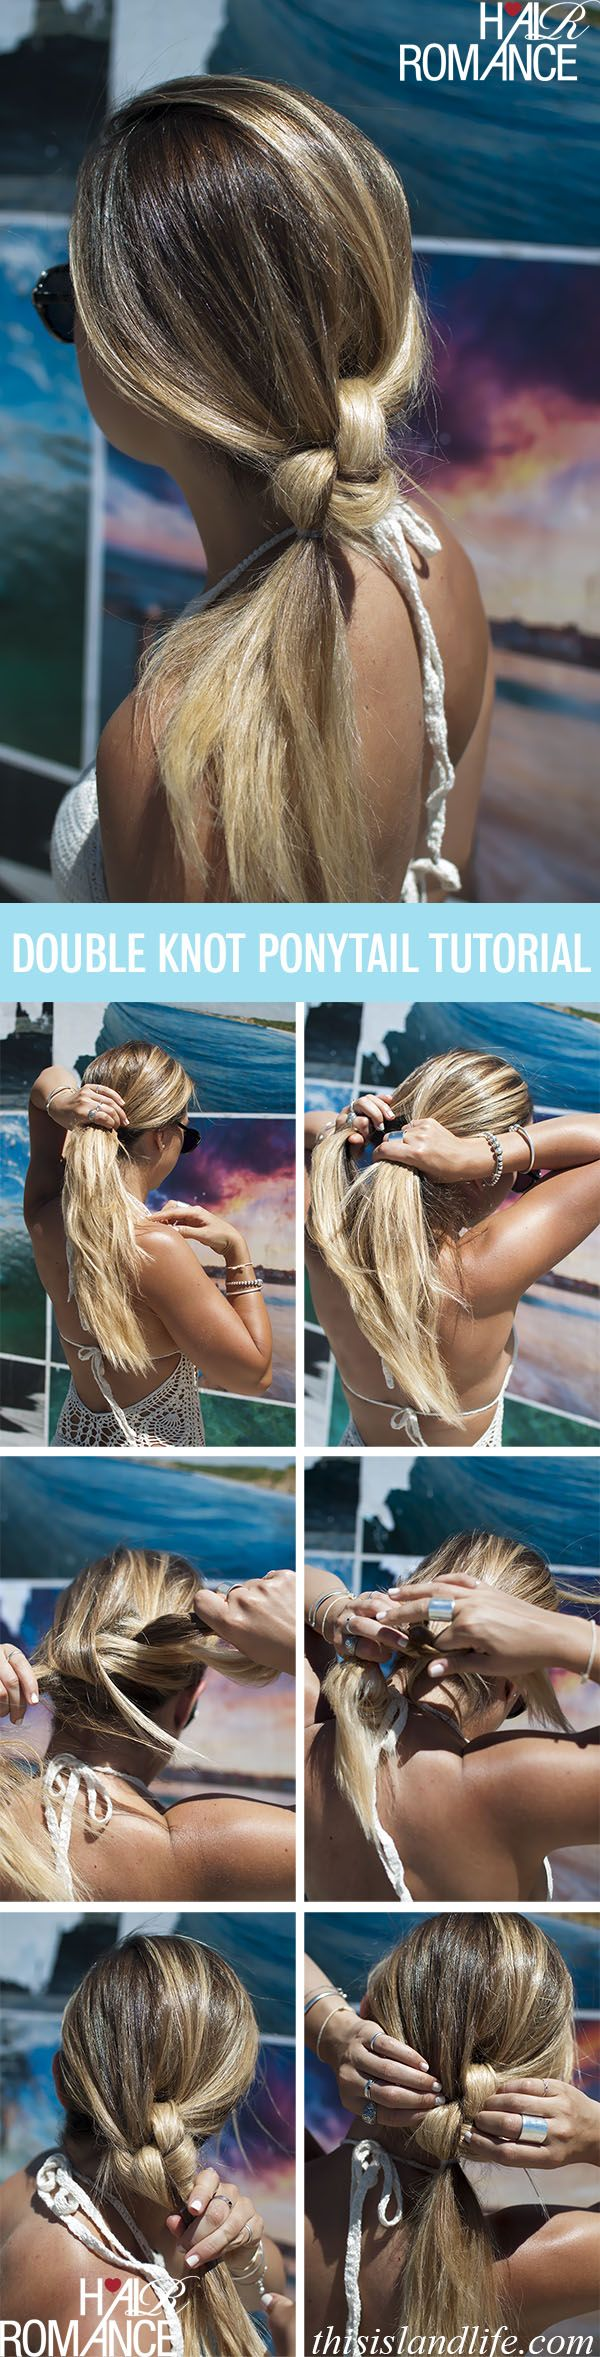 ponytail tips and tricks 2